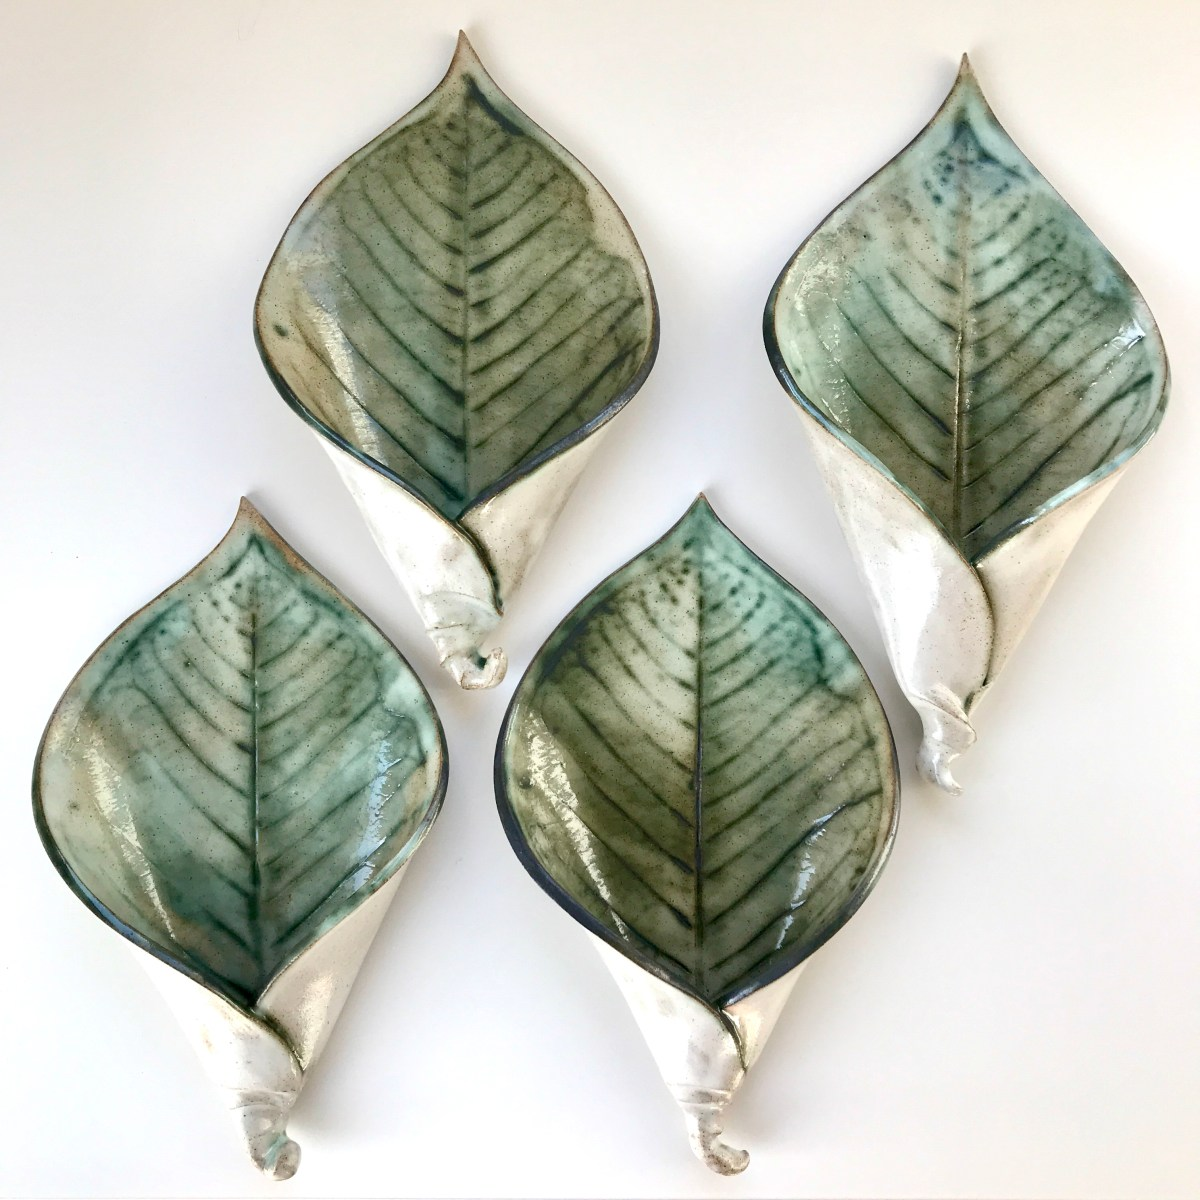 Lily Leaf Wall Planter by Sonya Ceramic Art (Group of 4 showing various shades of colour)